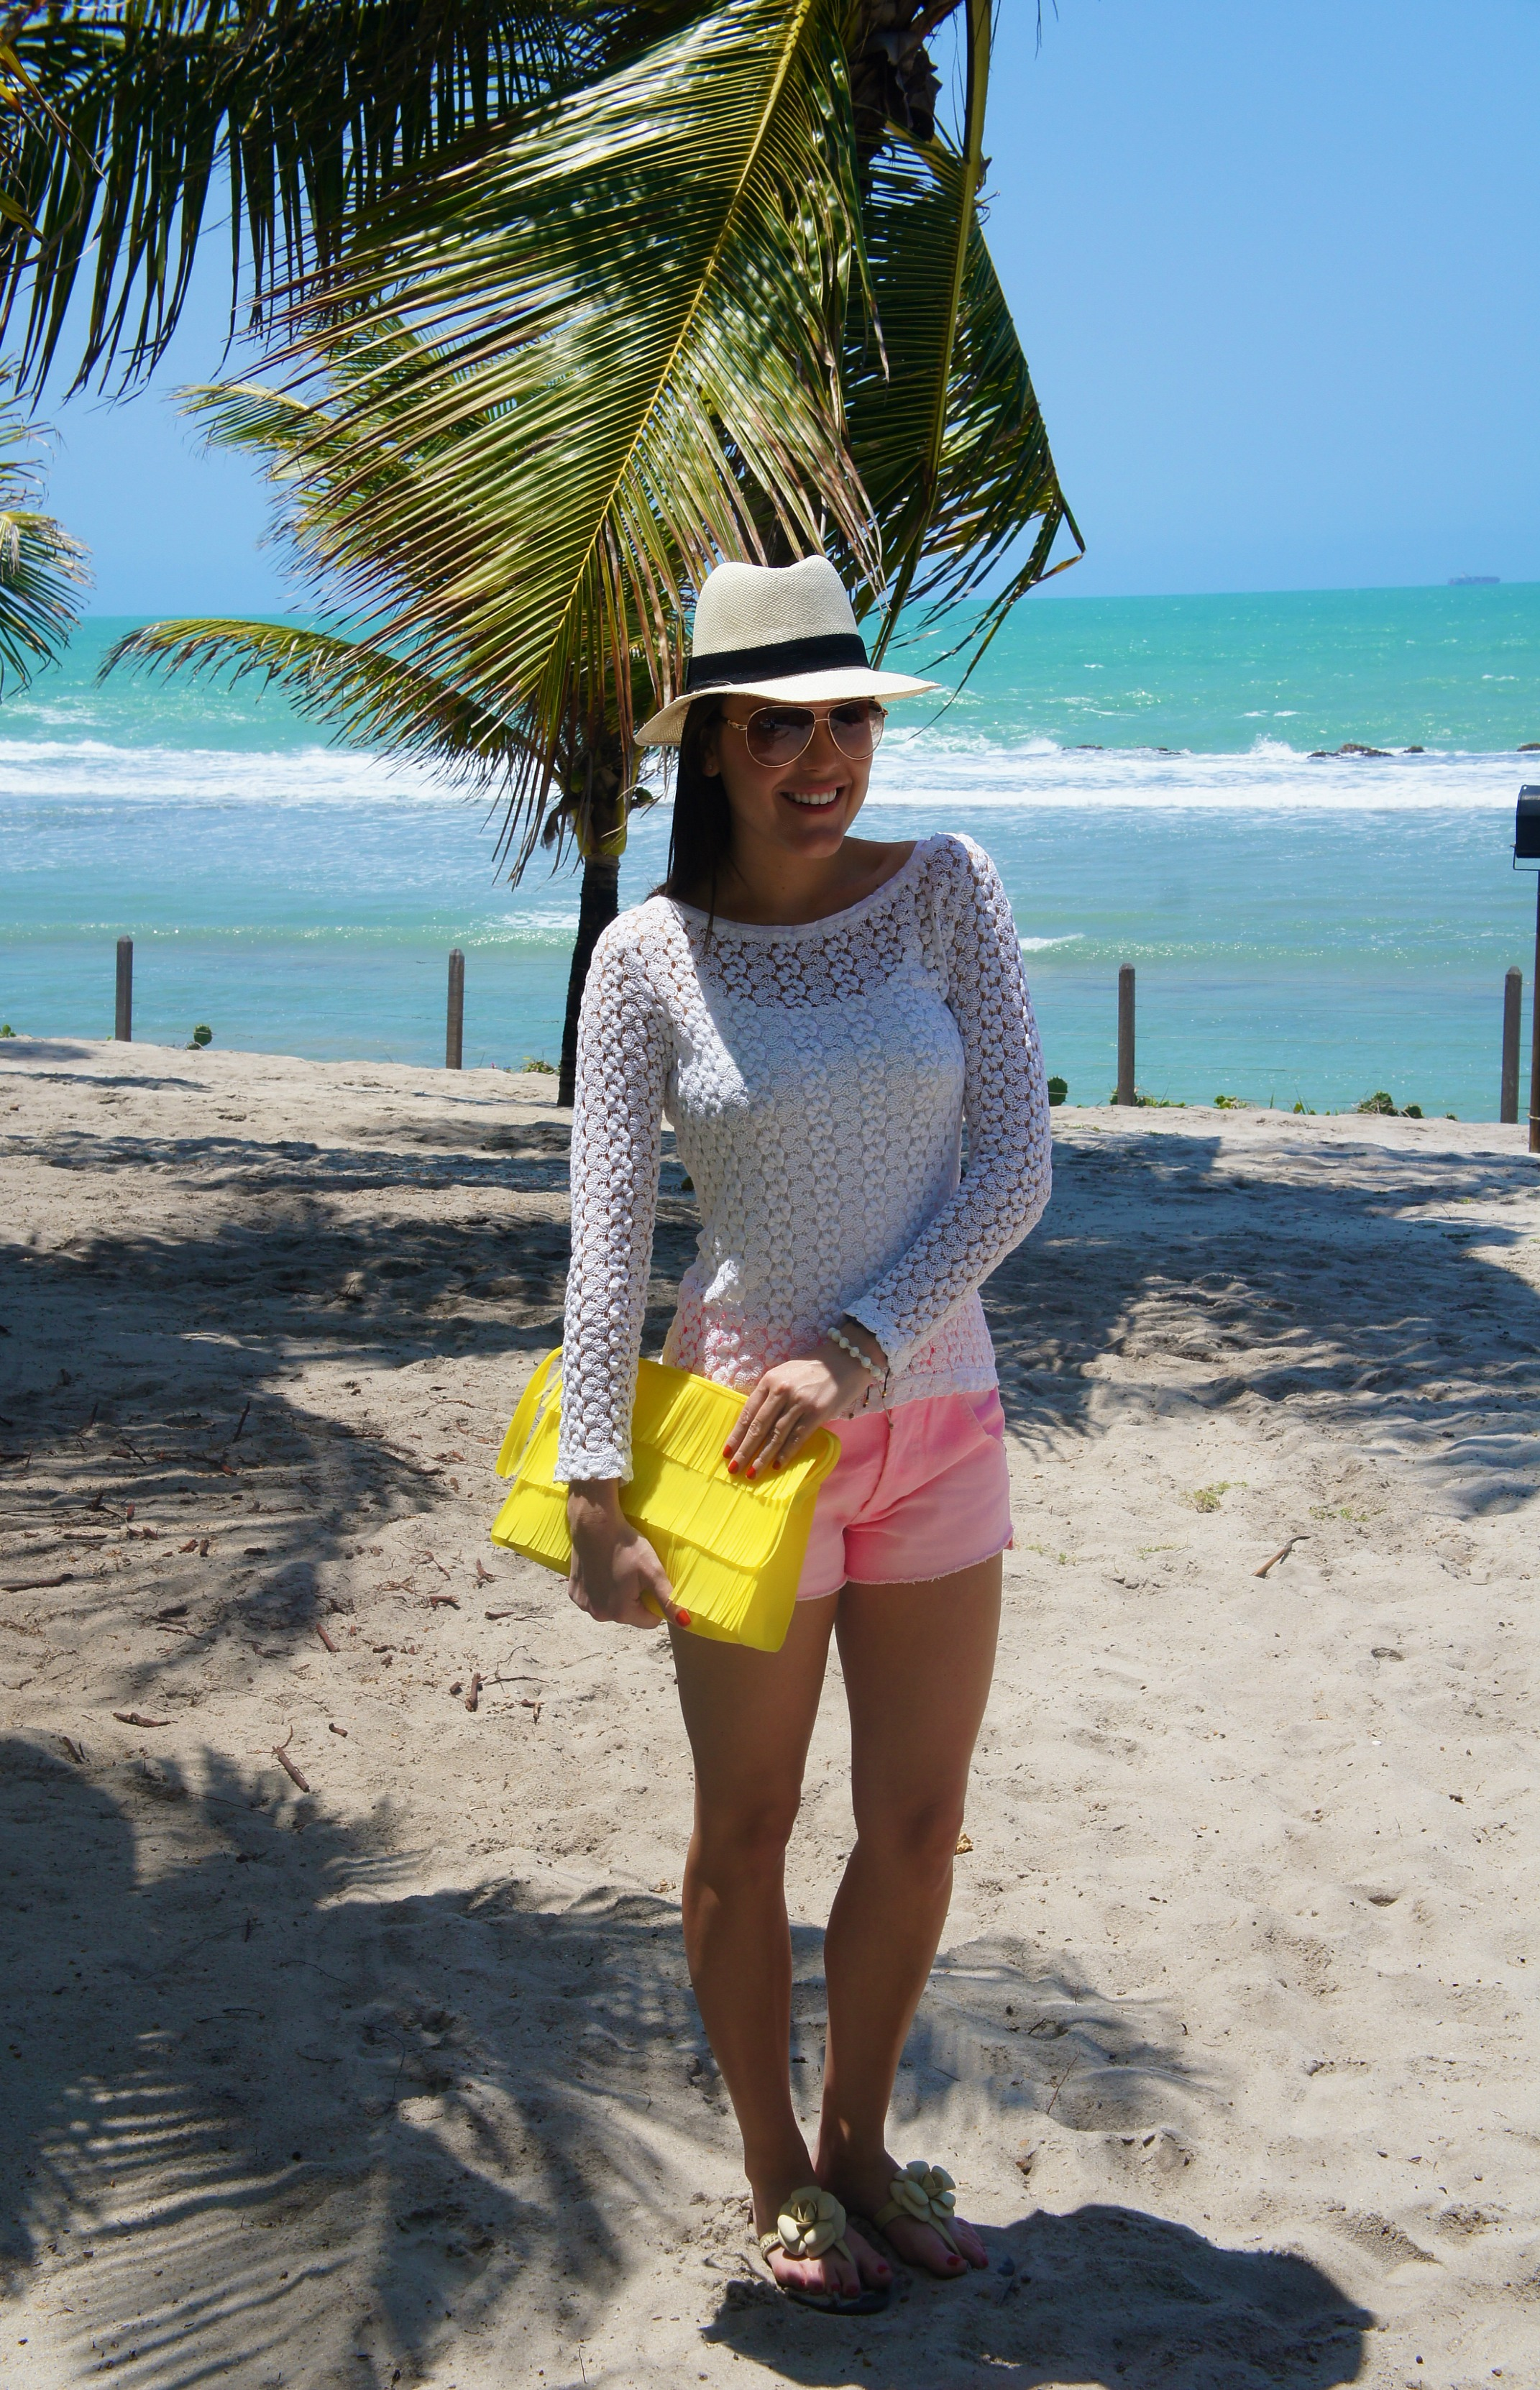 look-do-dia-Blog-da-Lari-Duarte-Nannai-Resort-Recife-Onde-fica-Como-chegar-?-Look-of-the-day-Farm-Zibba-Porto-de-Galinhas-Praia-de-Muro-Alto